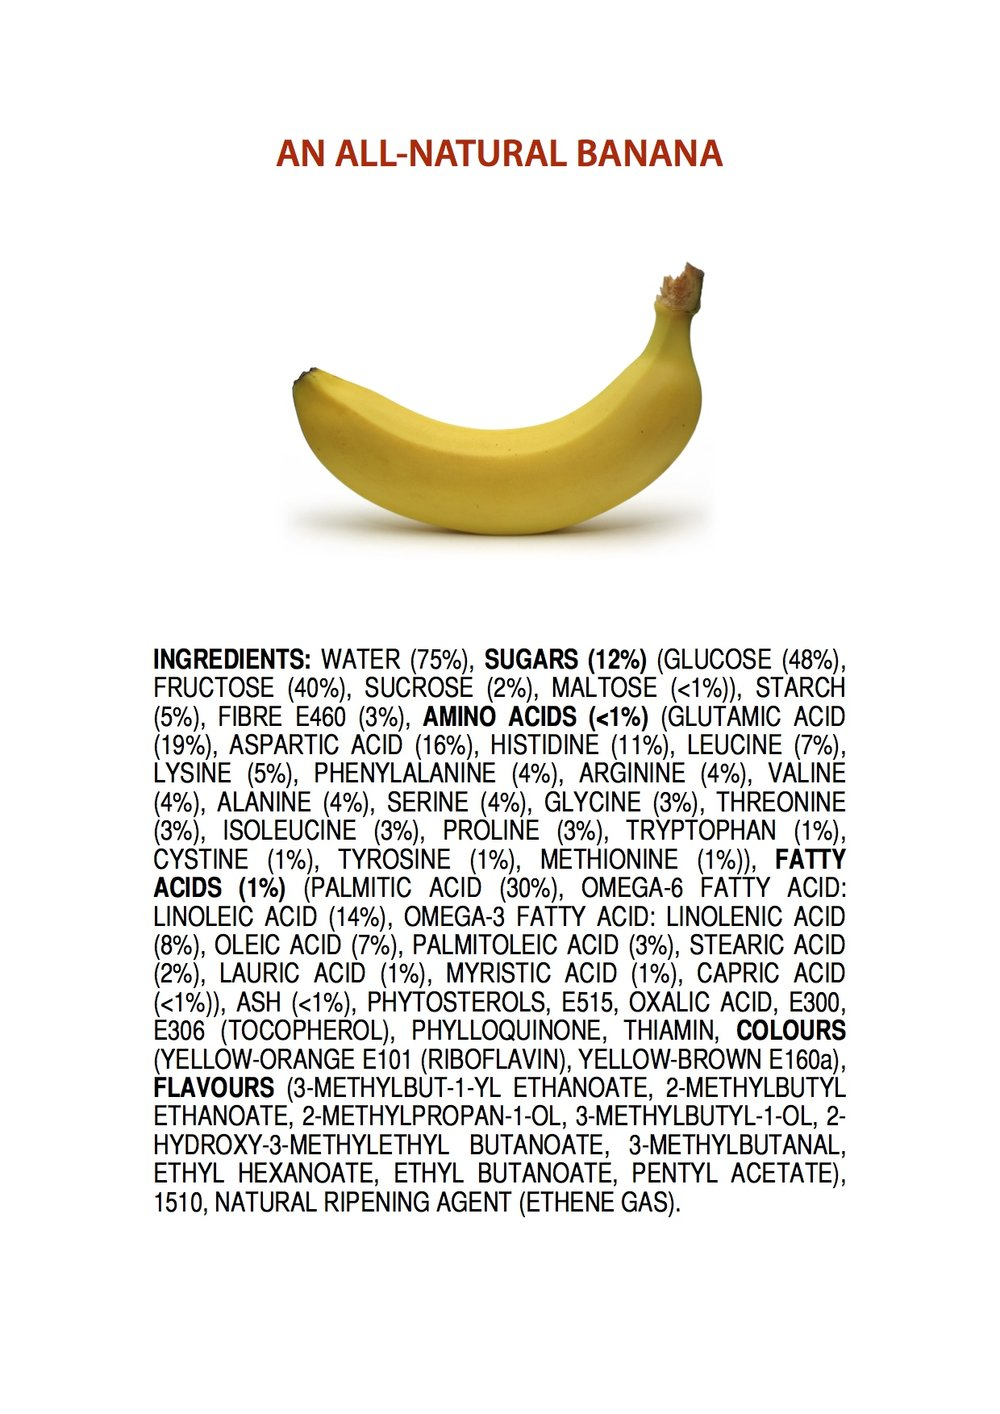 Chemicals in All-Natural Bananas